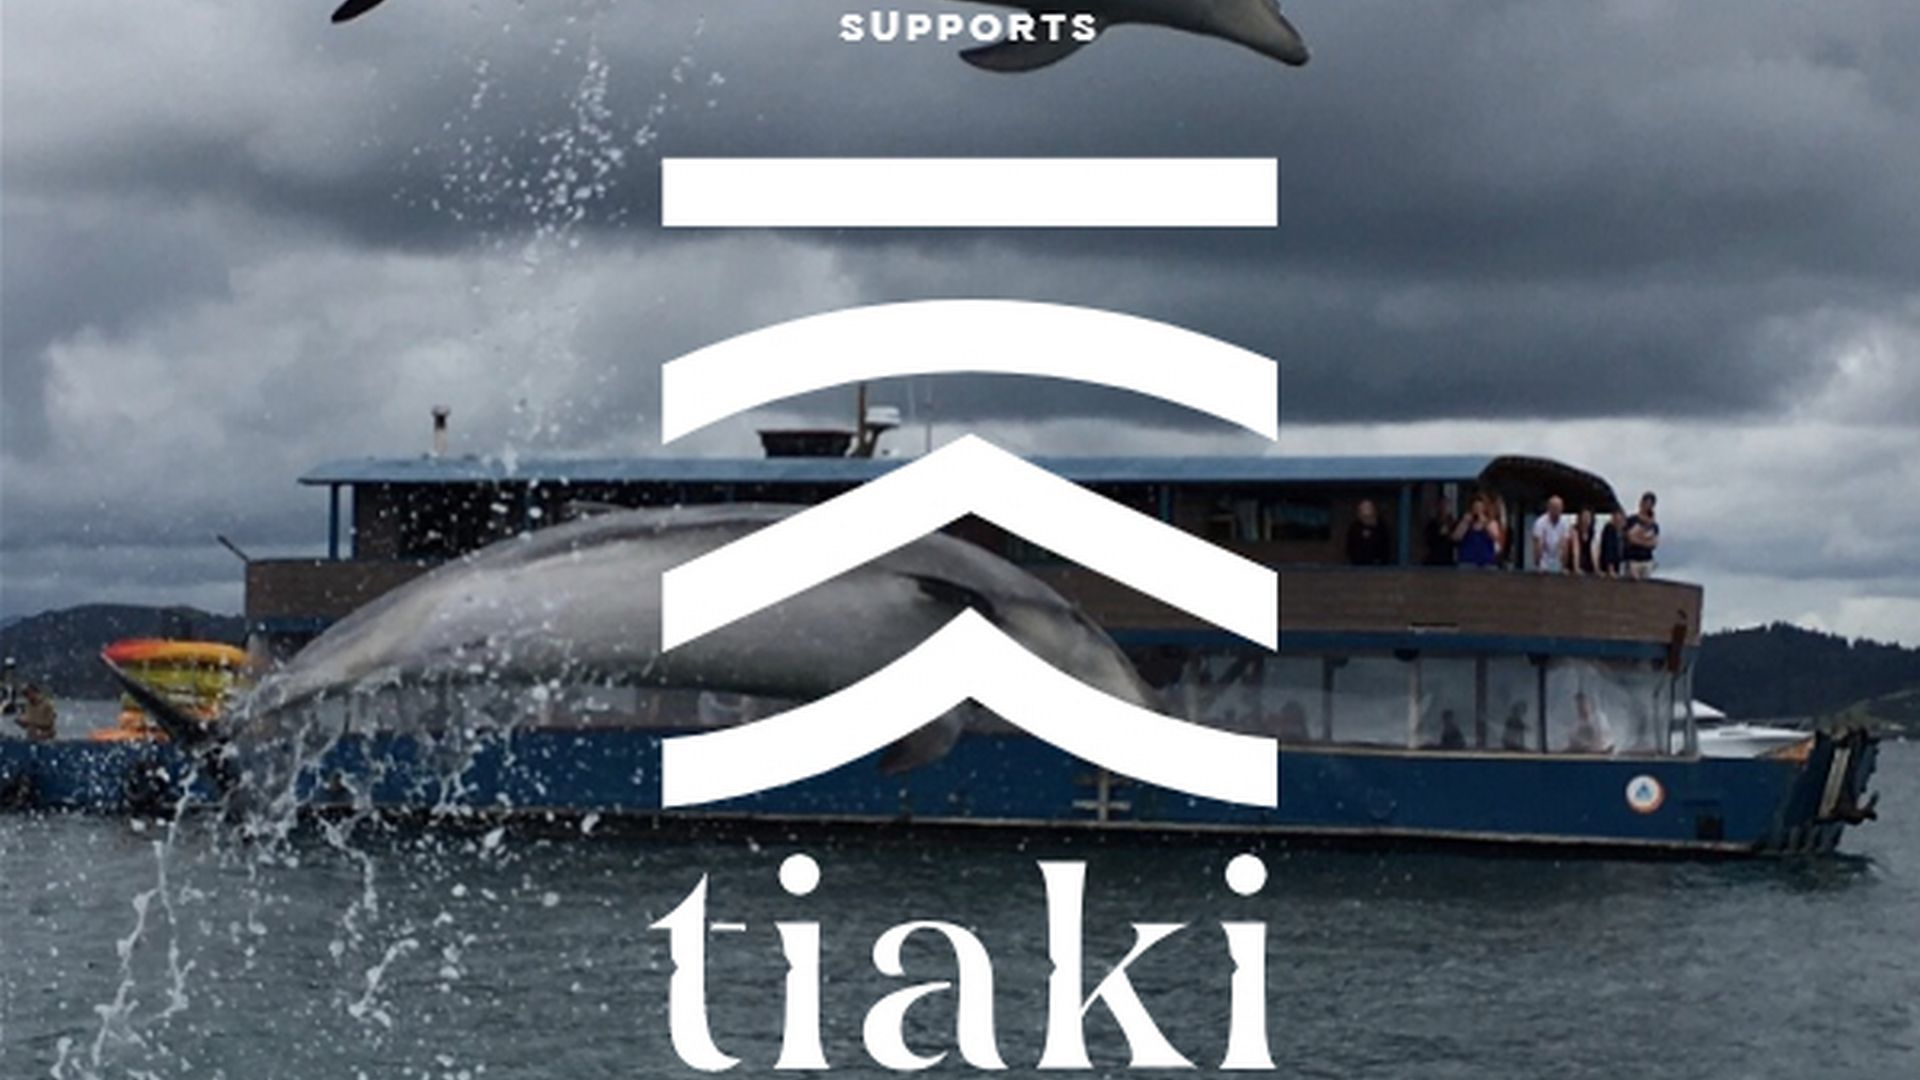 Our Bay of Islands Dolphins are jumping for joy that The Rock has joined the Tiaki Promise